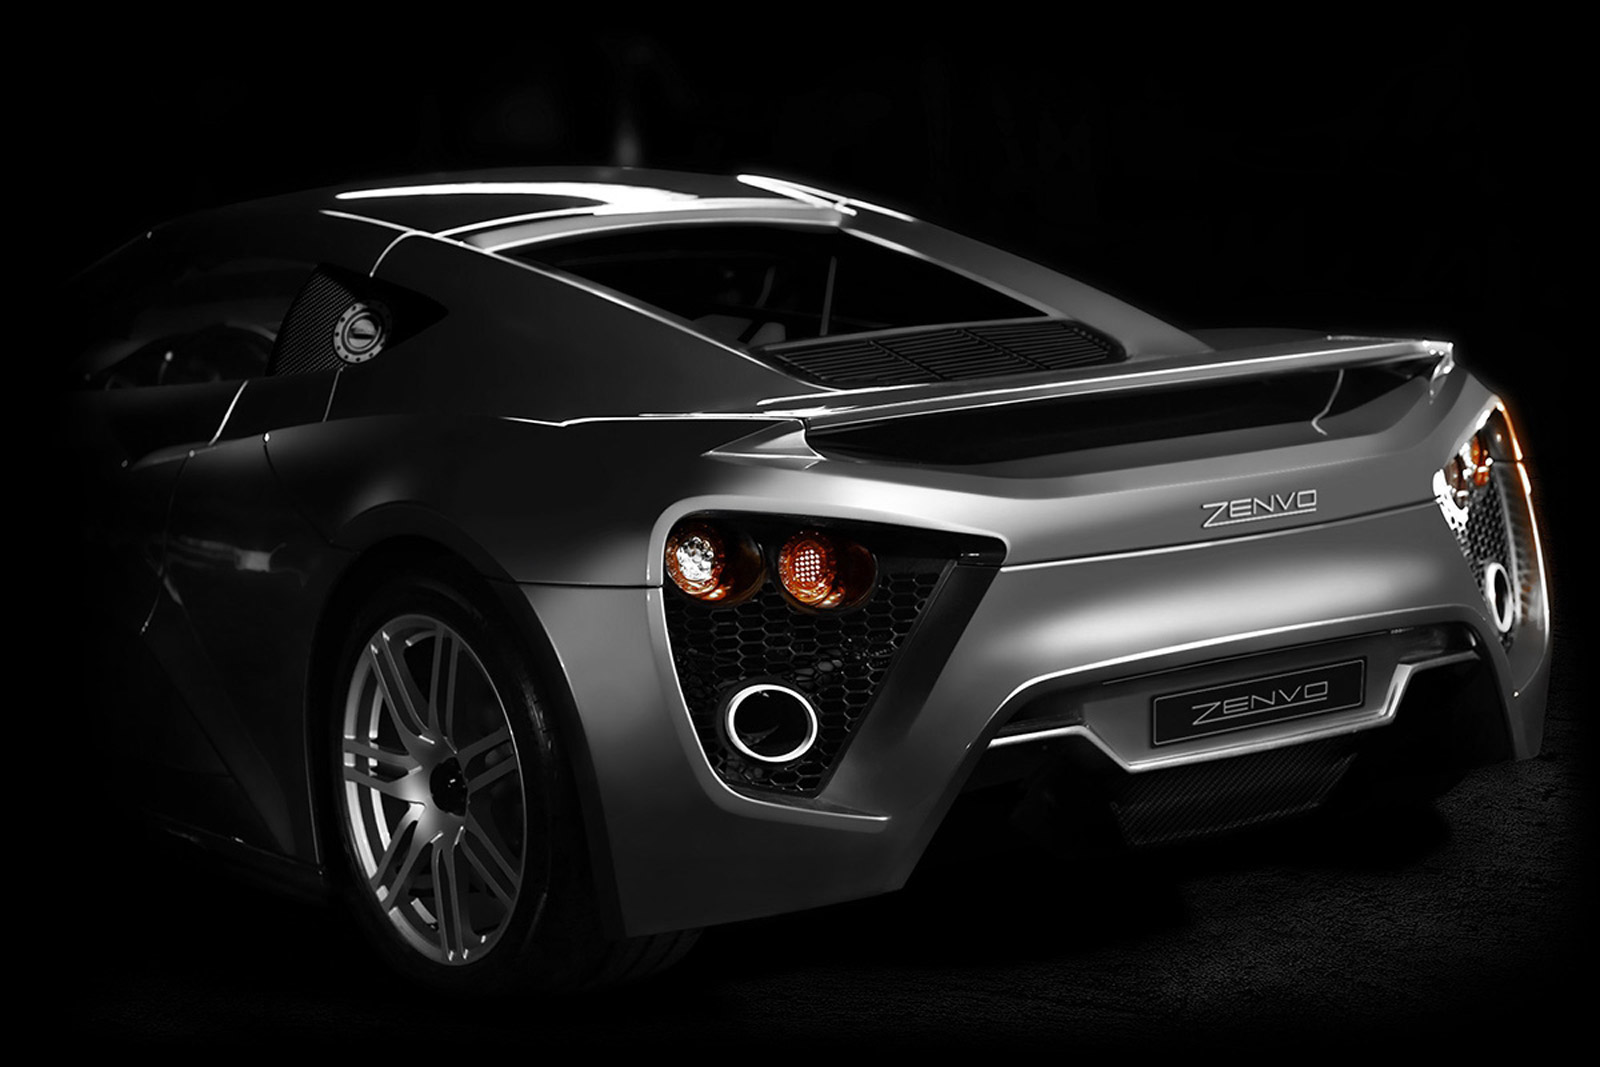 Zenvo ST1, 2015 Ford Focus, Alfa 4C Goodwood Run: Car News Headlines